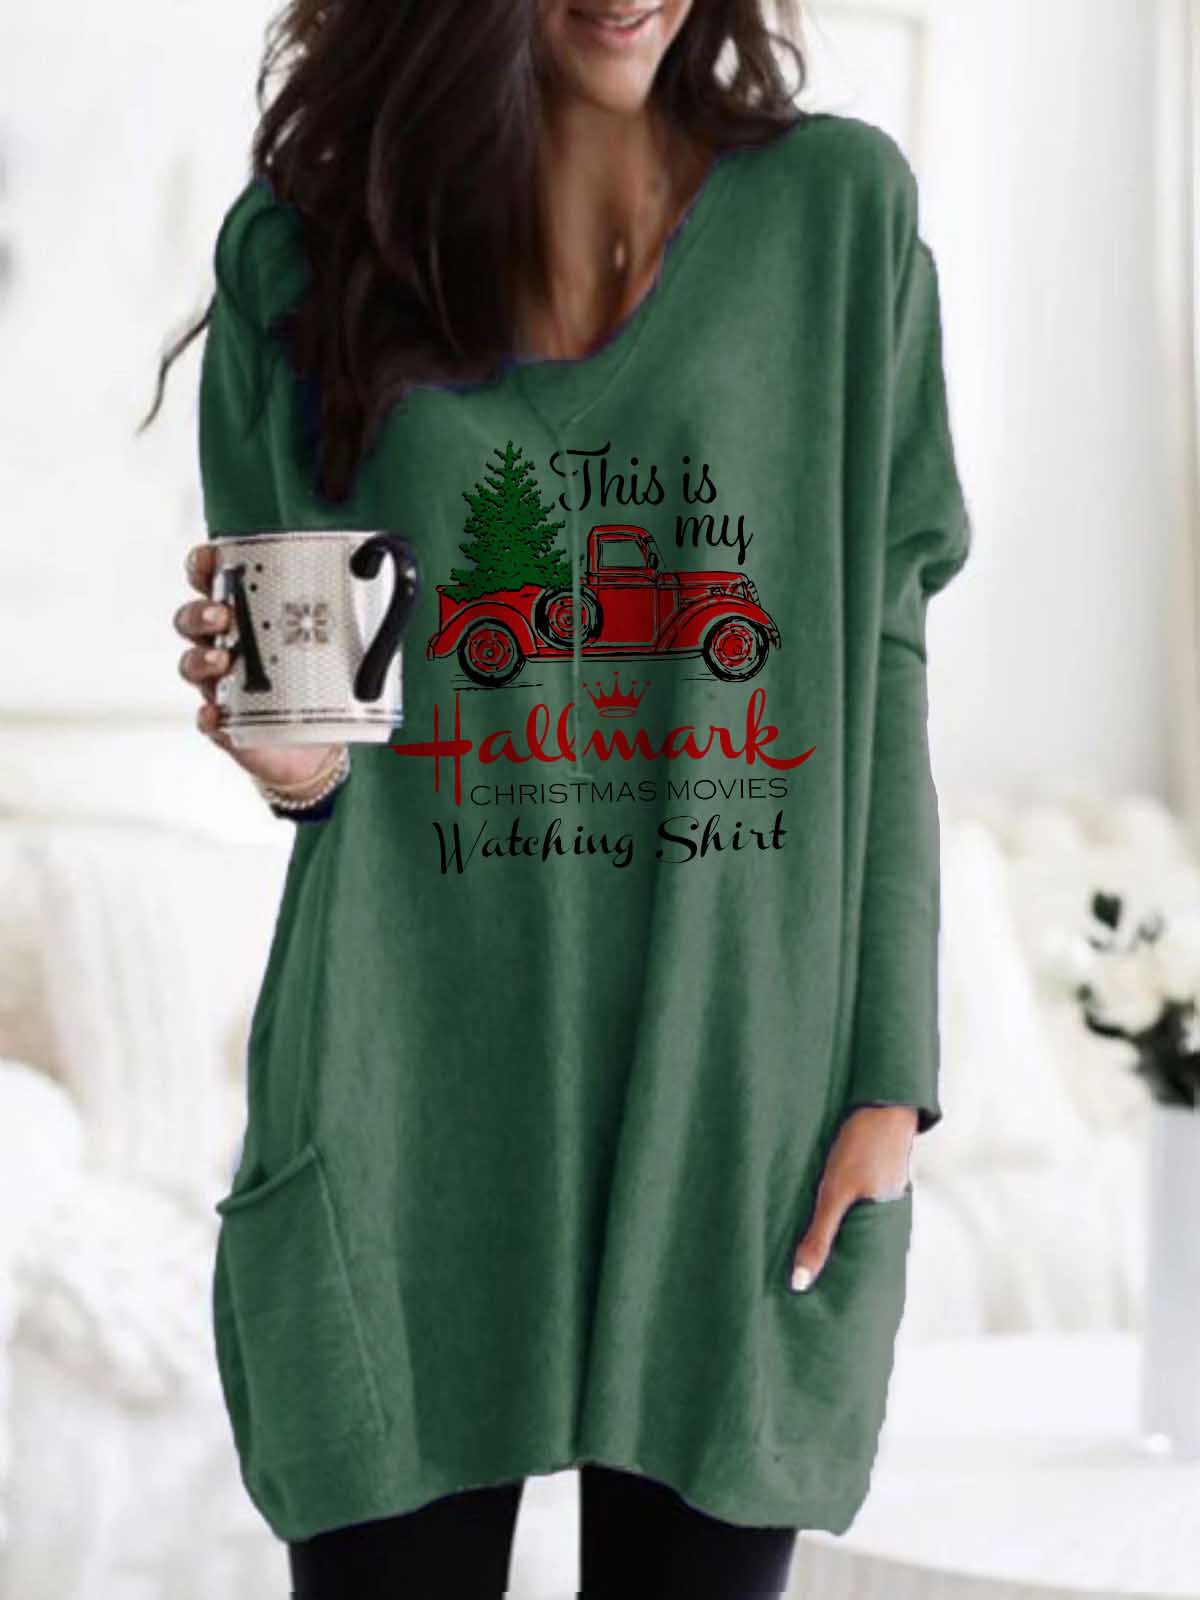 Women's This Is My Hallmark Christmas Movies Watching Shirt Printed Pocket Top